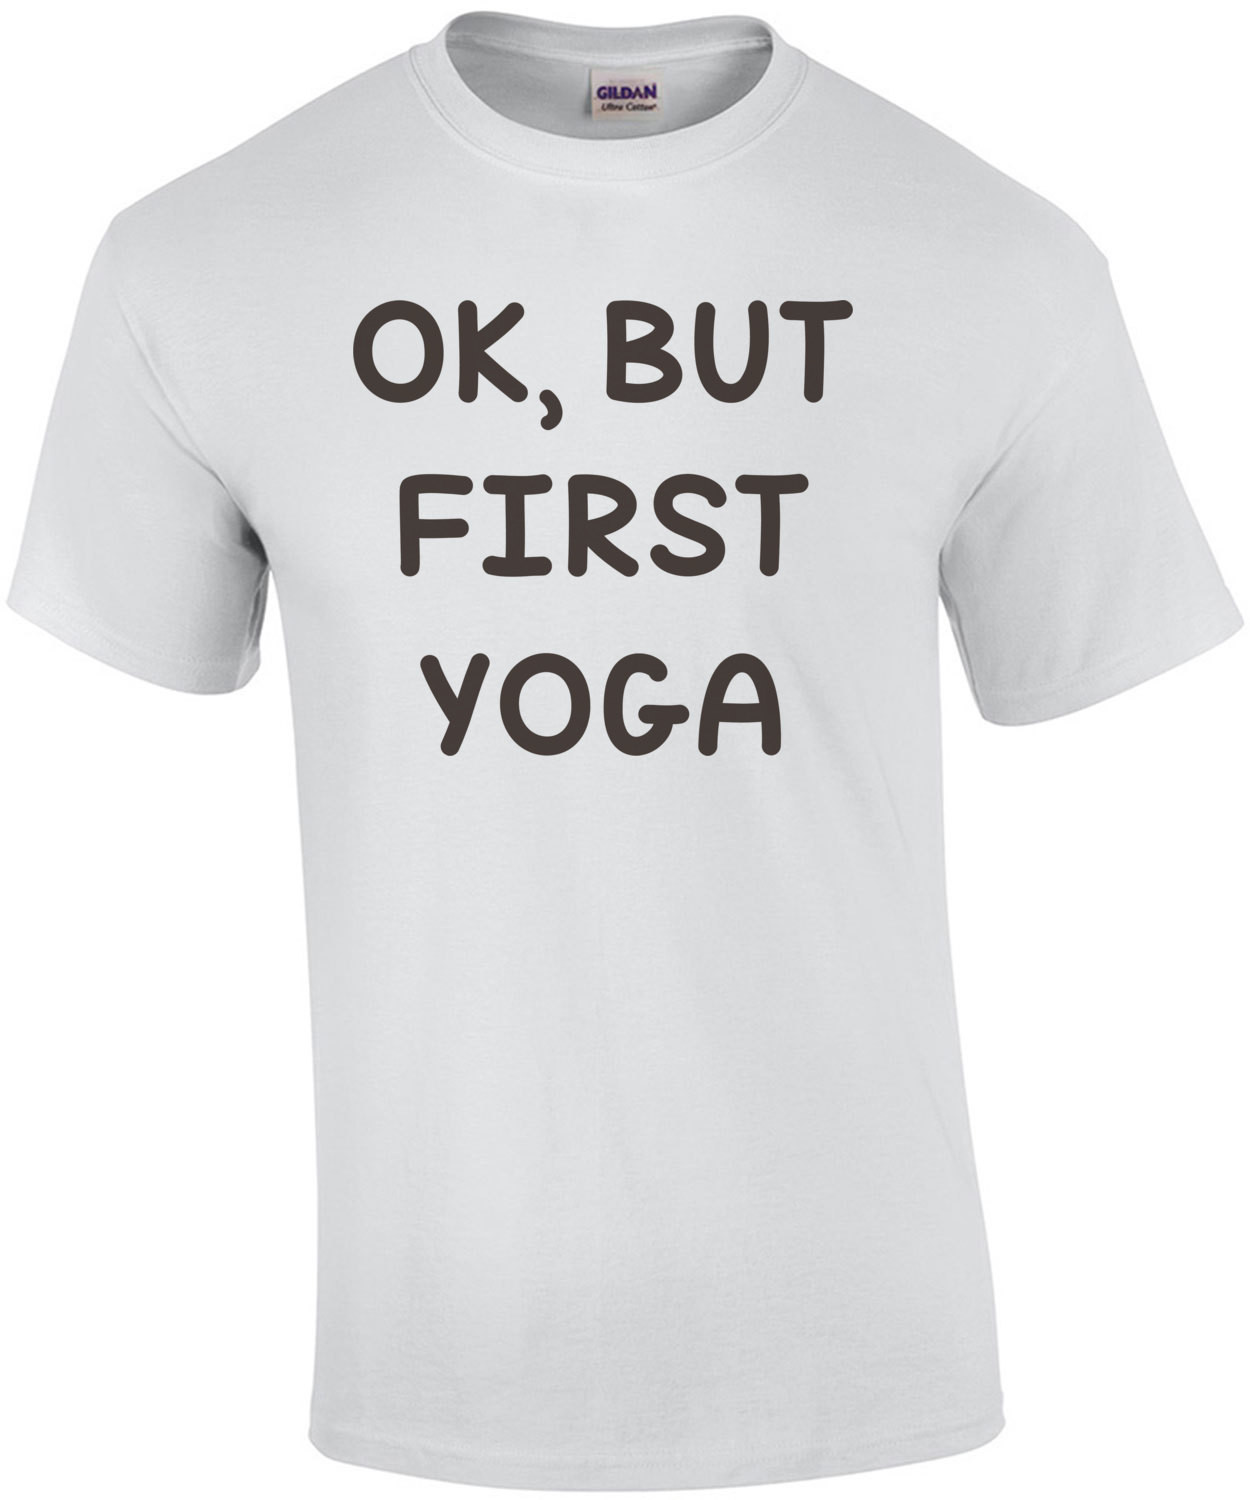 OK, BUT FIRST YOGA - Funny Yoga T-Shirt